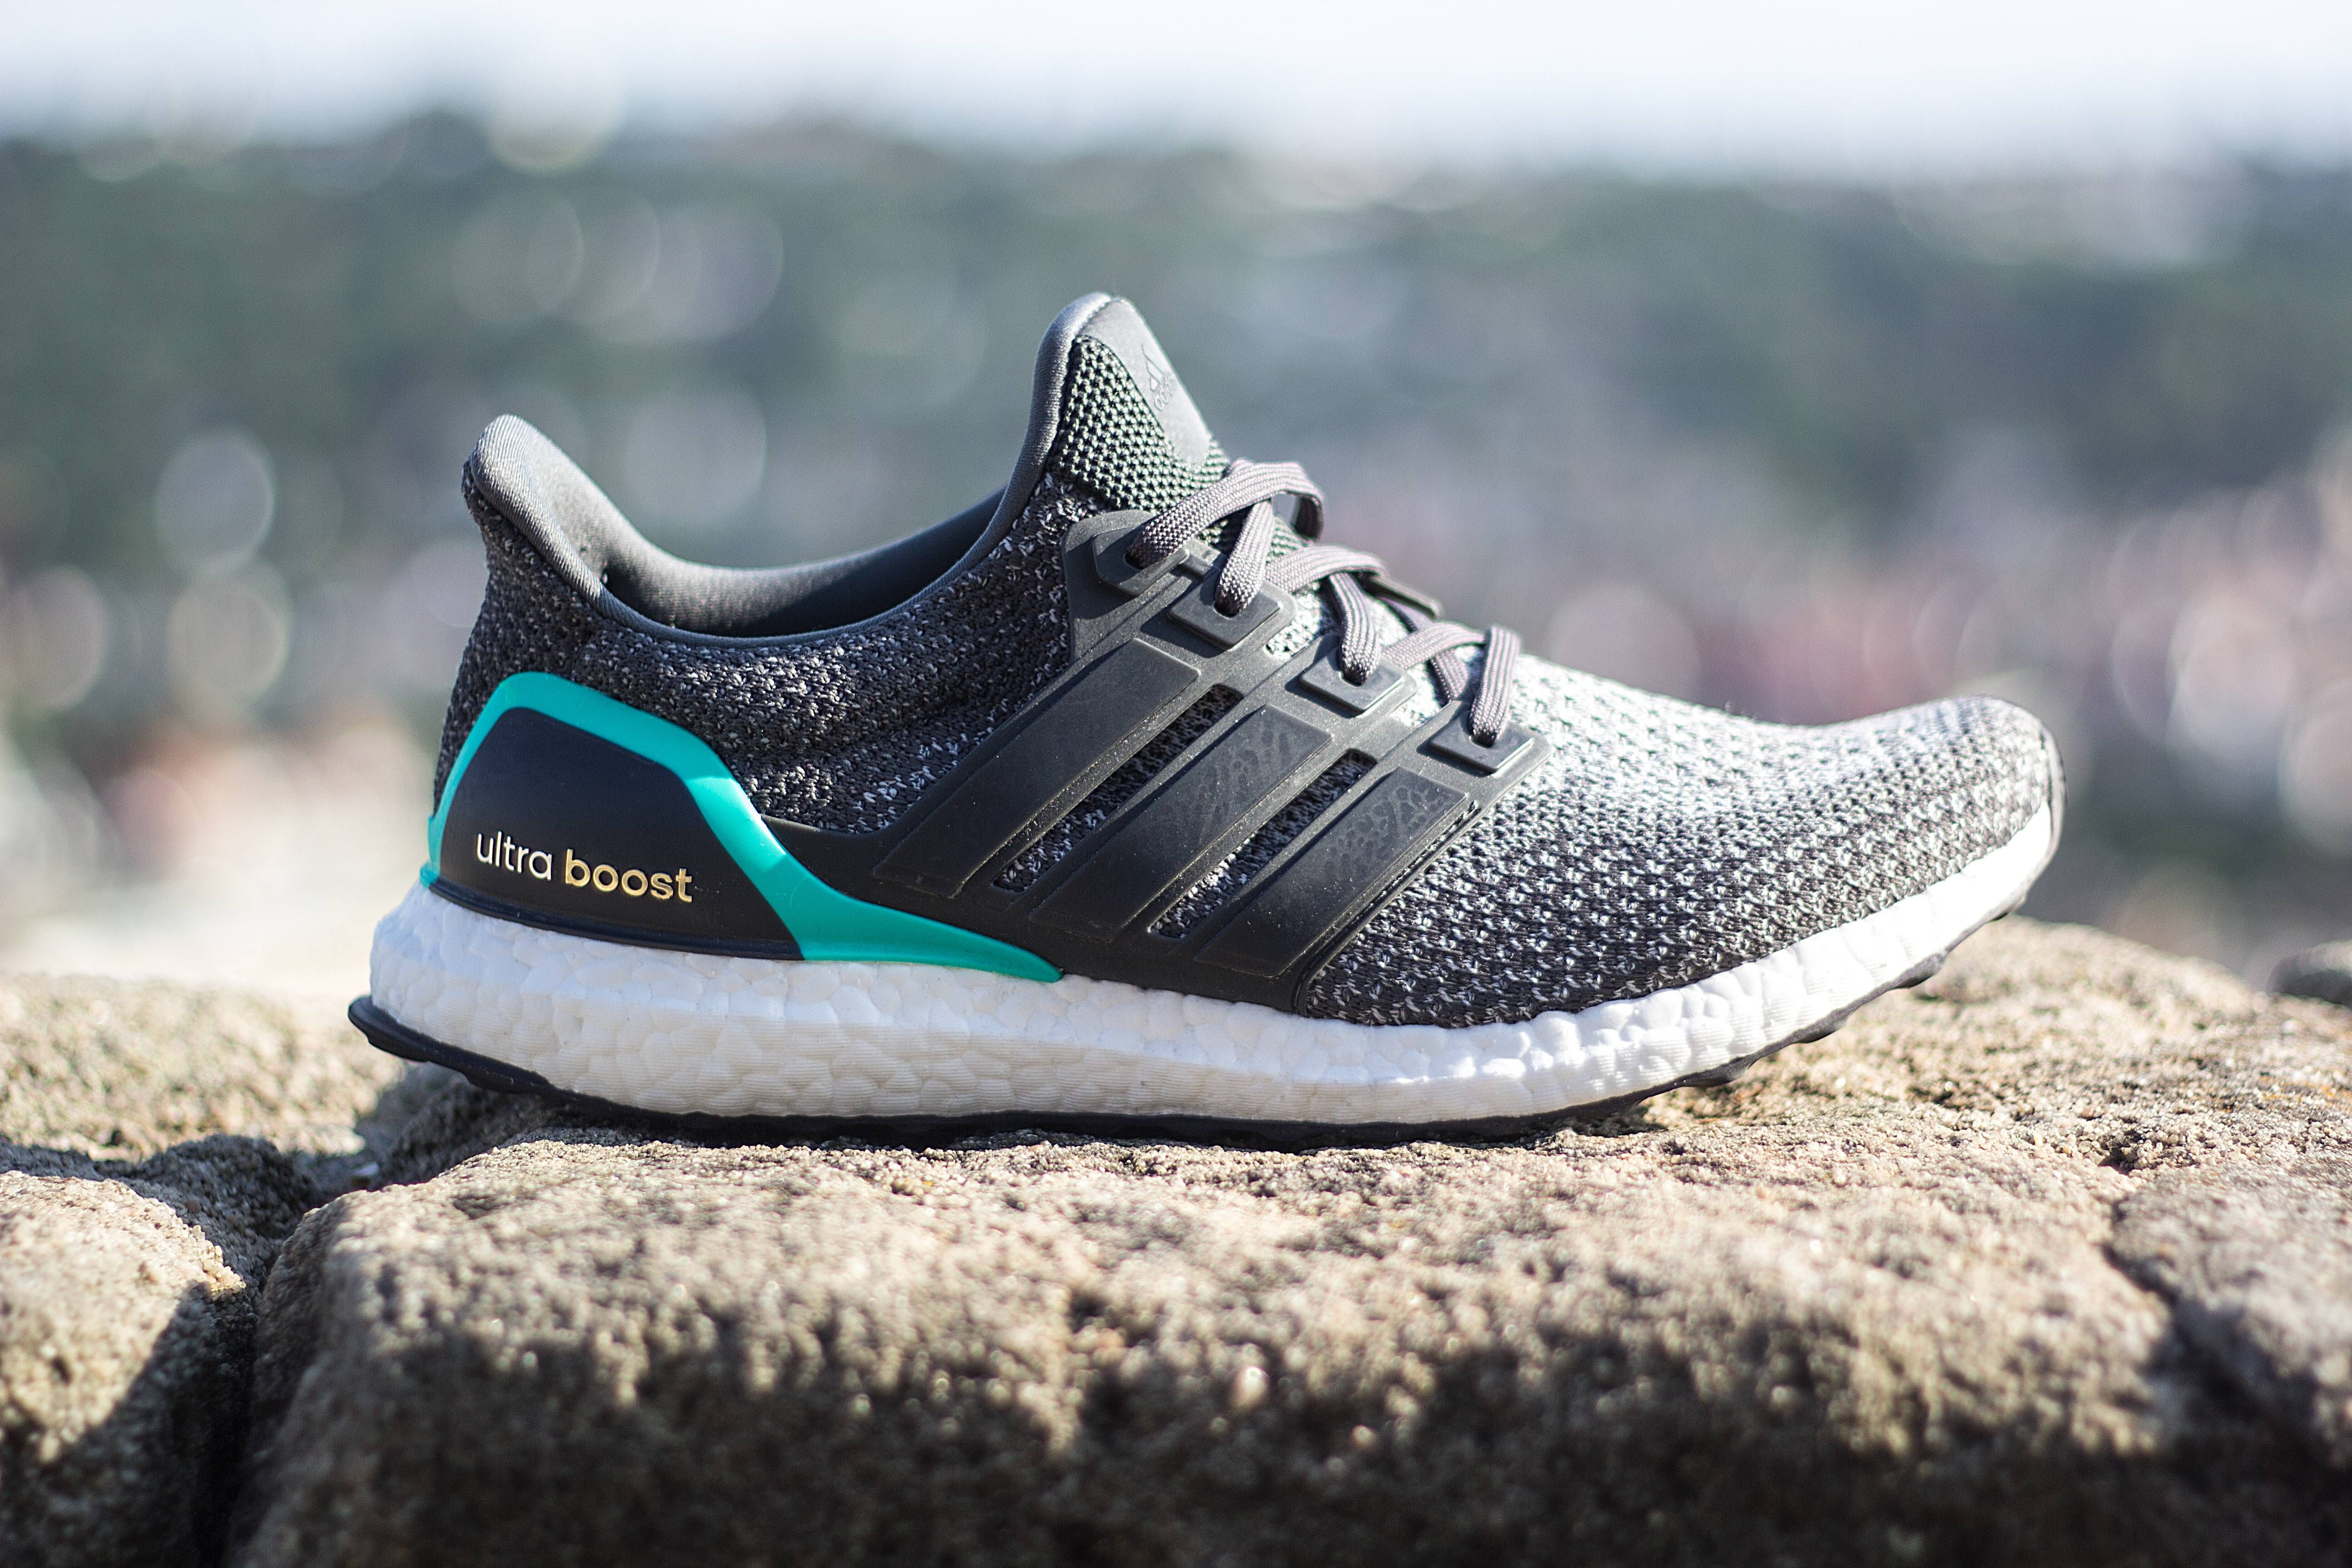 8c0d78908b Photo shoot   On Feet with my latest  Pickup  the Adidas Ultra Boost ...